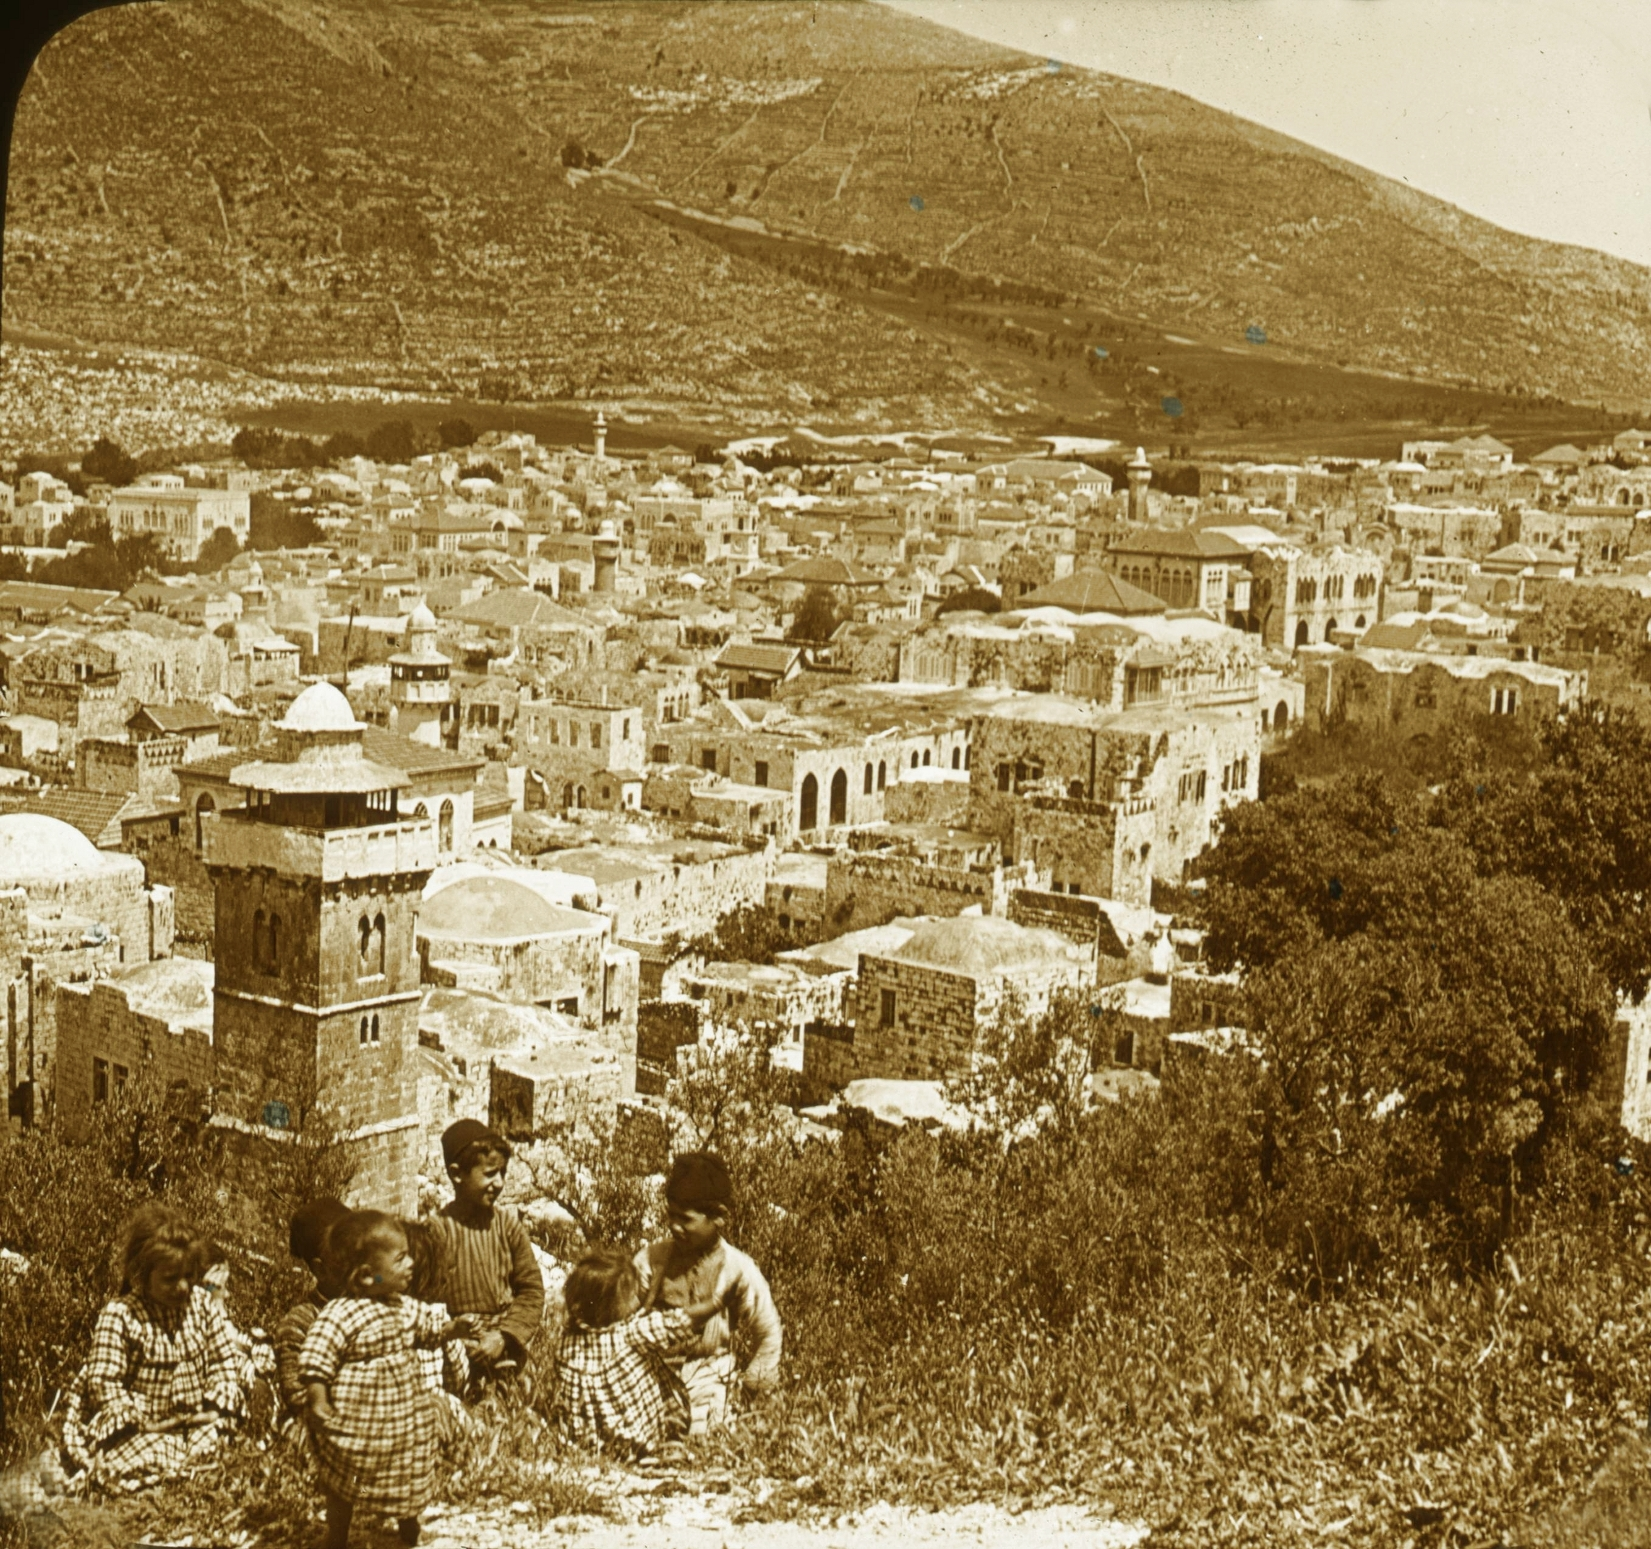 Nablus - نابلس : NABLUS - Late 19th, early 20th c. 40 - Nablus and Mount Ebal, 1880s